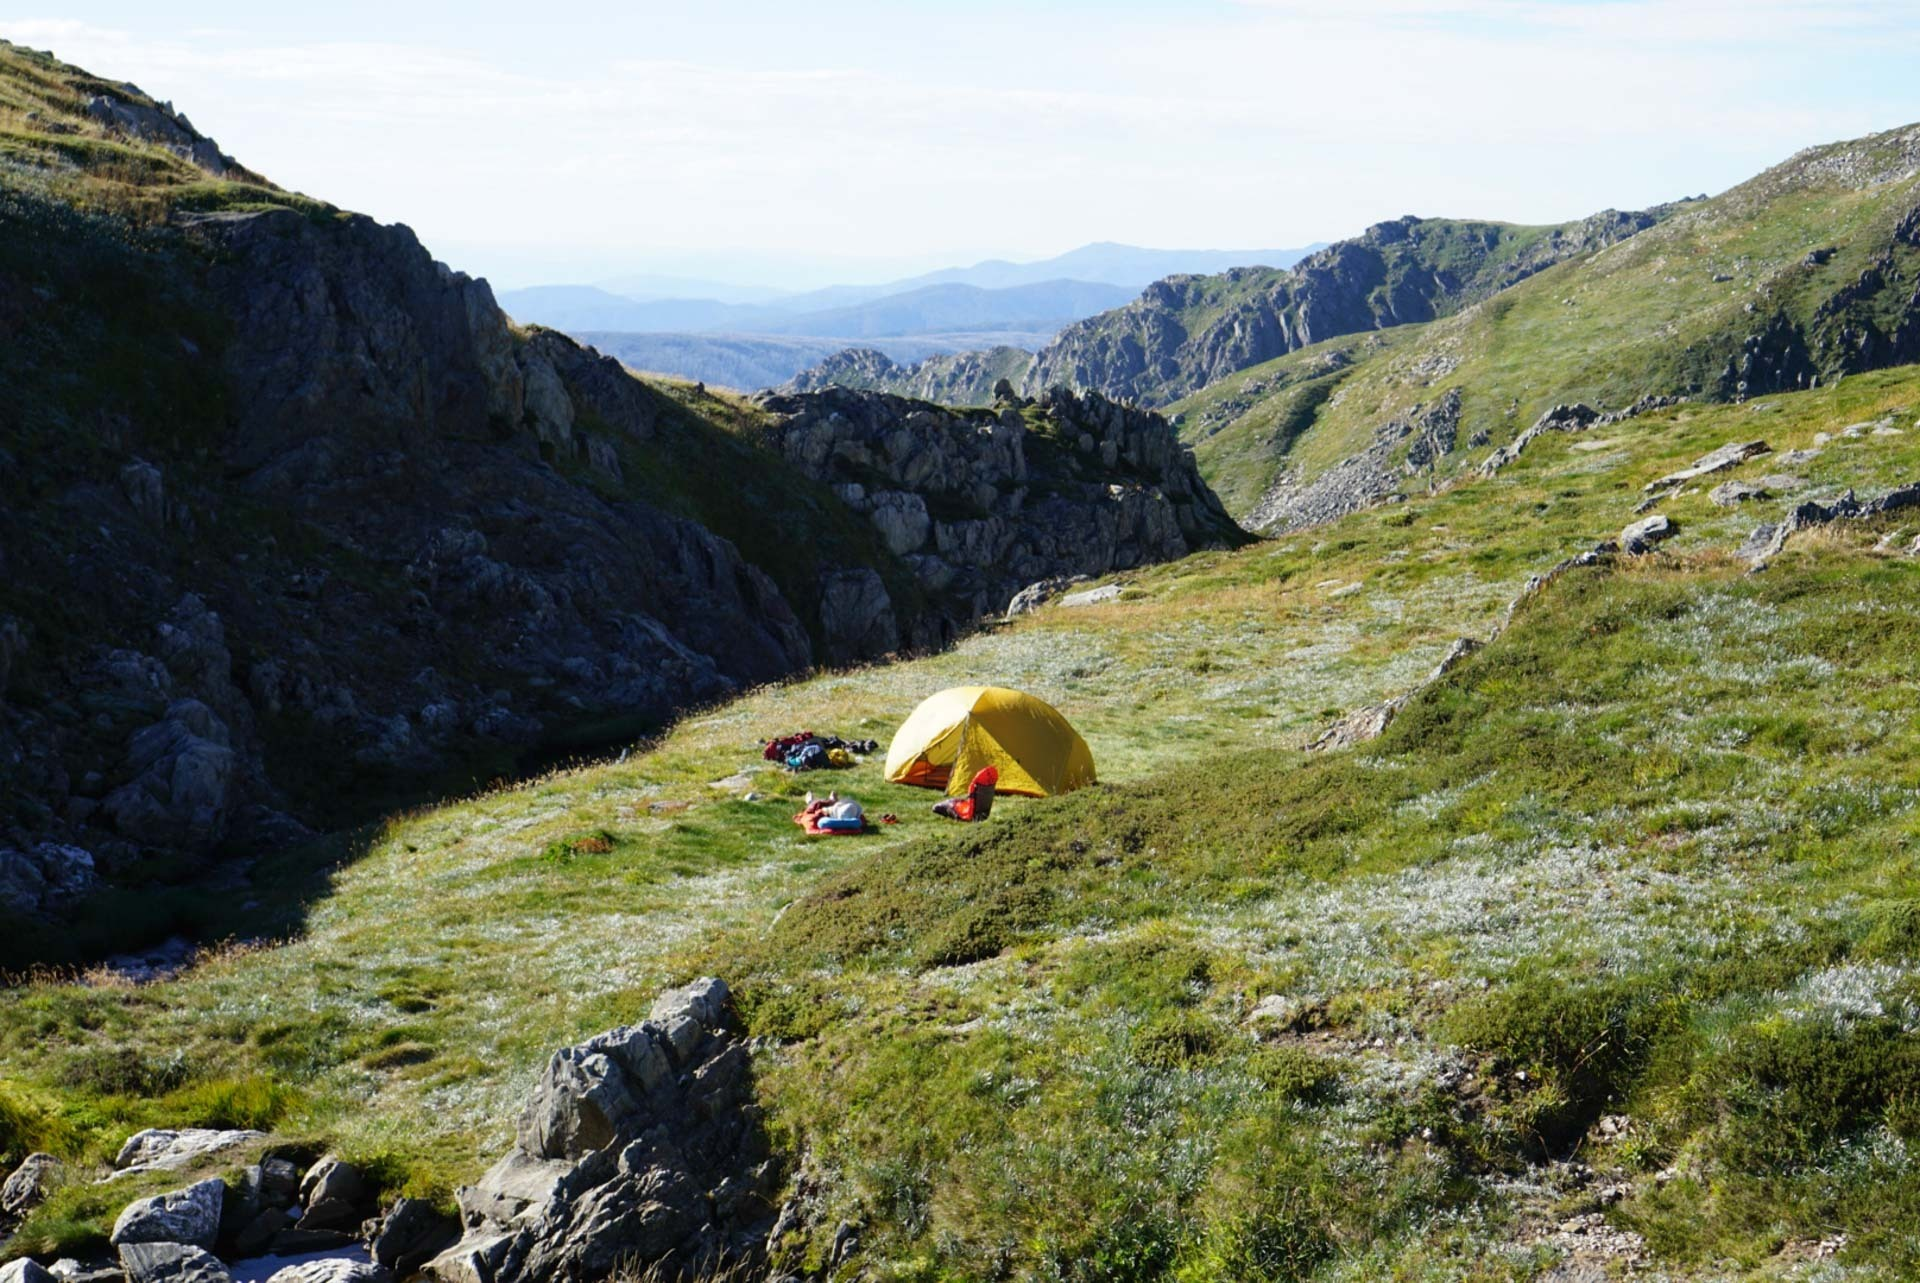 Sea to Summit Air Chair – Gear Review, ryan backhouse, kosciuszko national park, nsw, alpine, tent, camping